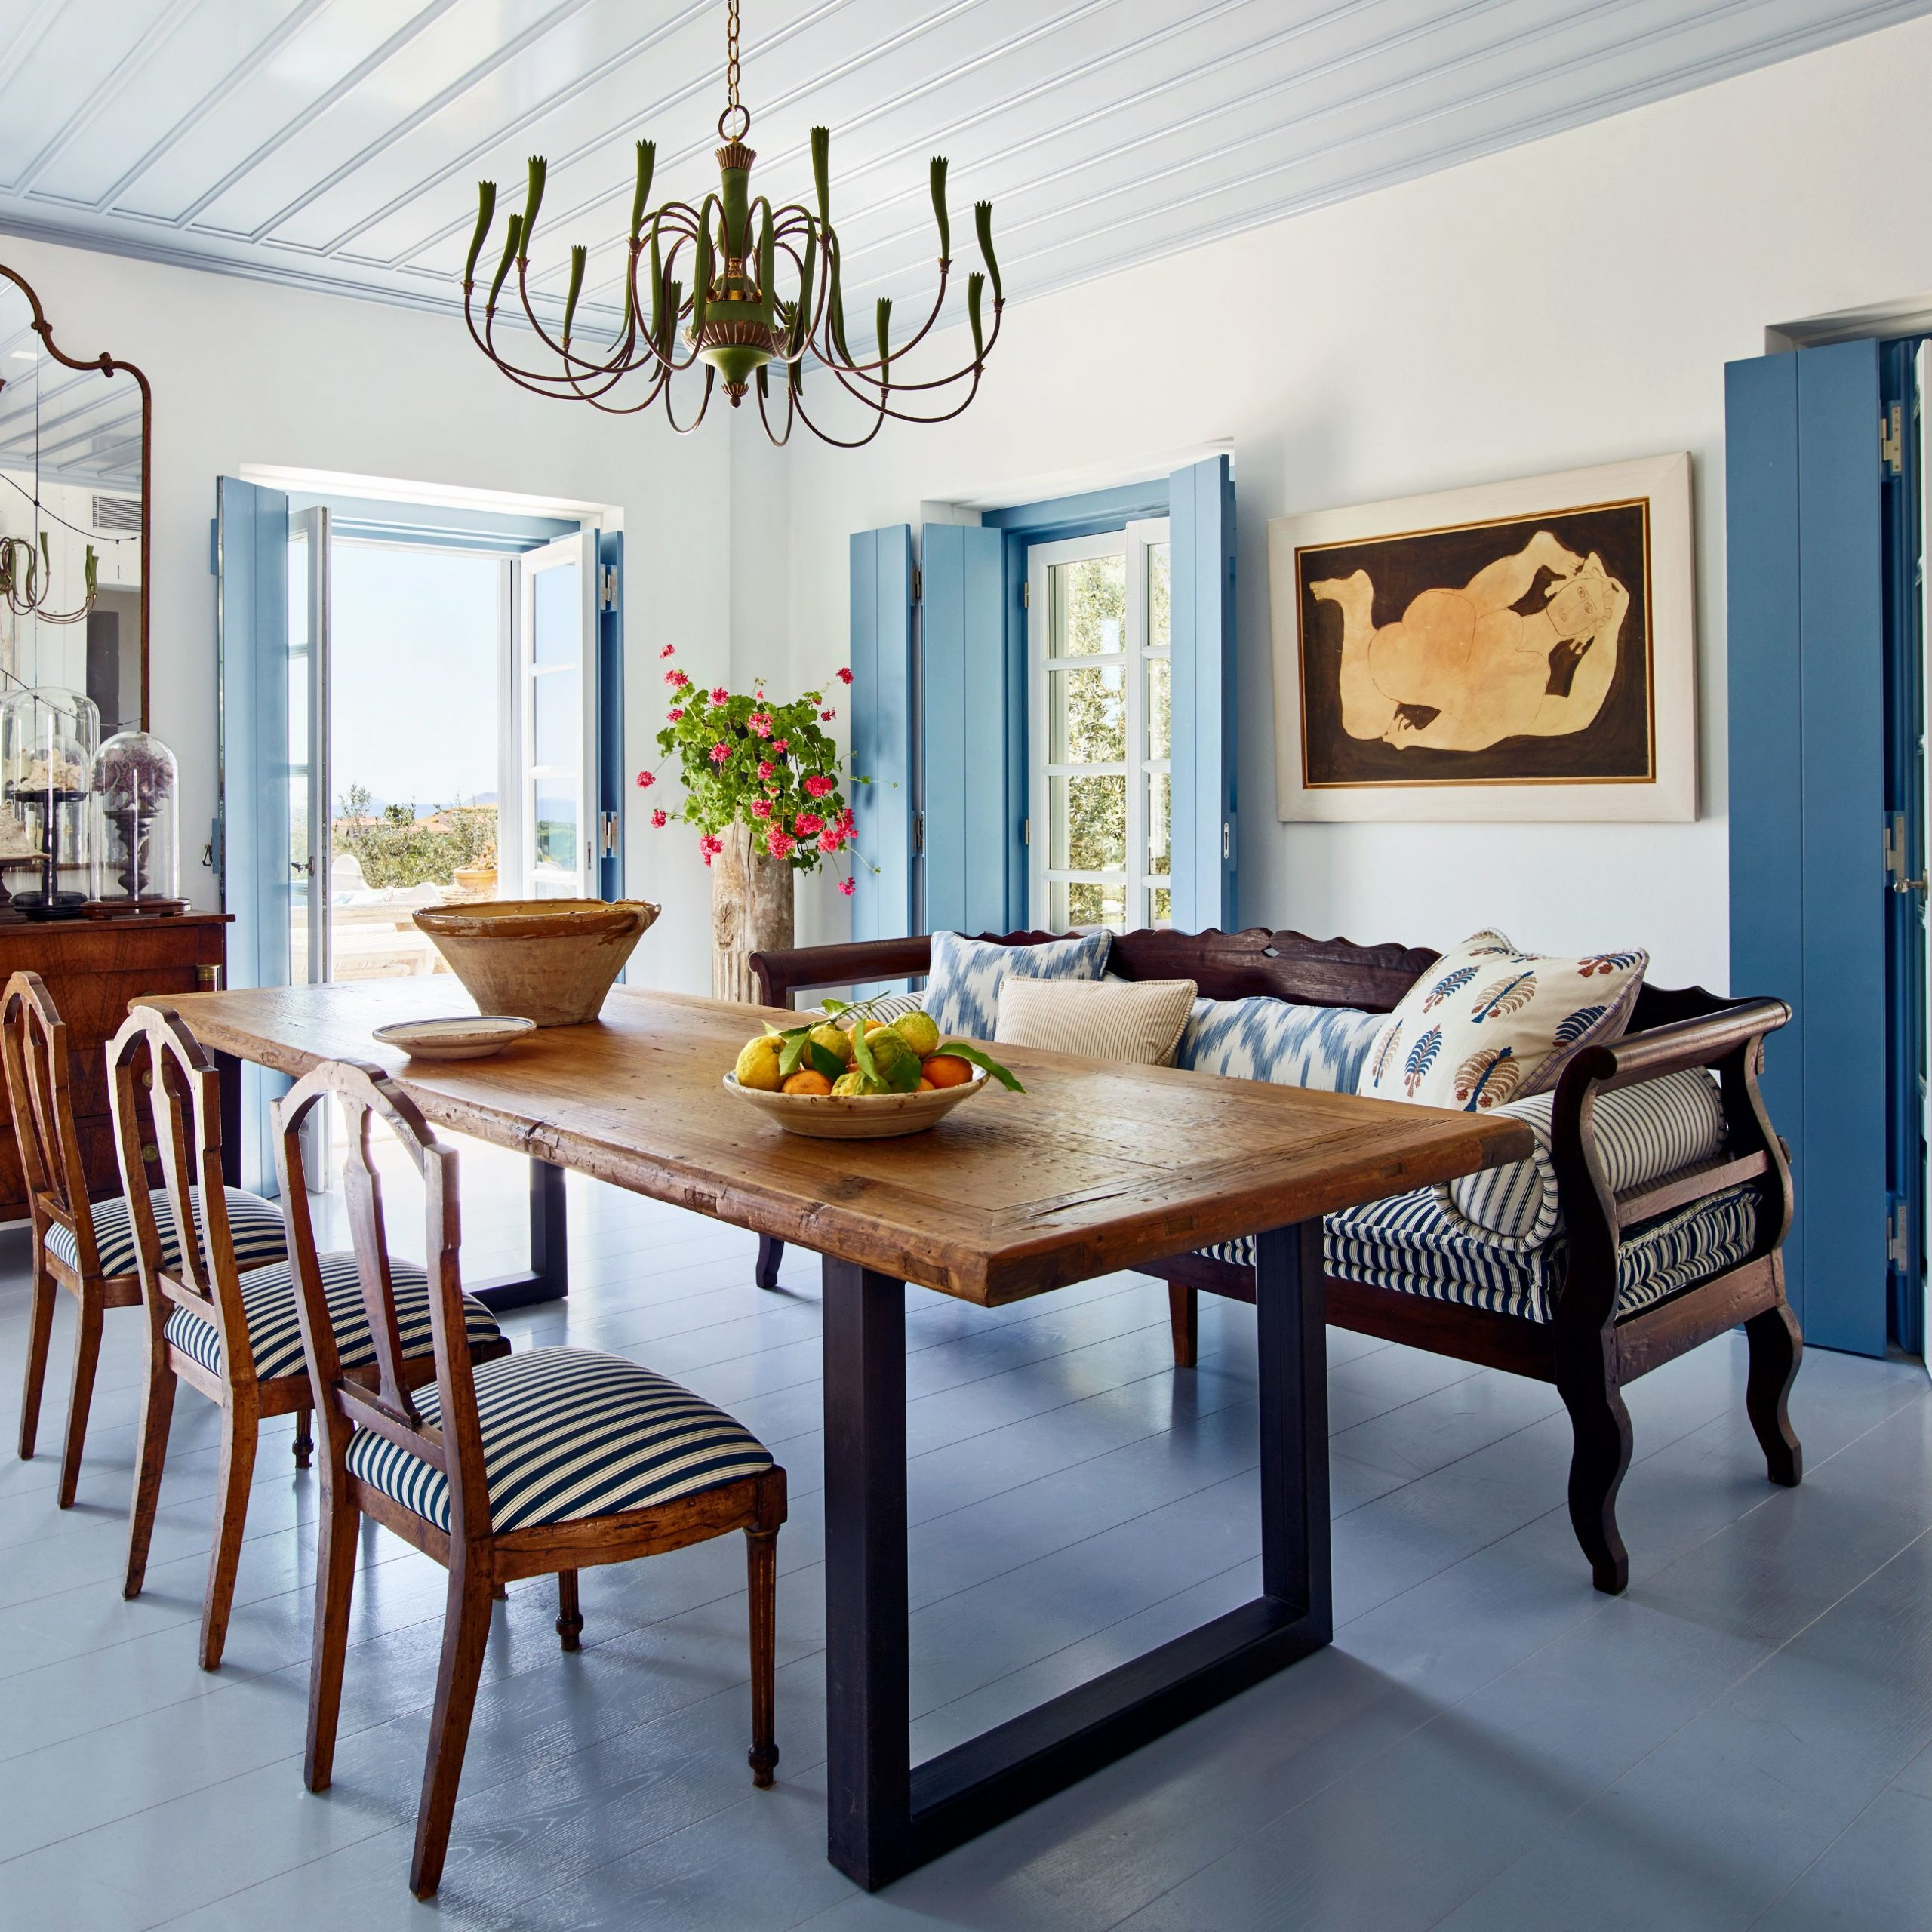 Most Up To Date Eames Style Dining Tables With Wooden Legs Throughout Tips To Mix And Match Dining Room Chairs Successfully (View 10 of 16)